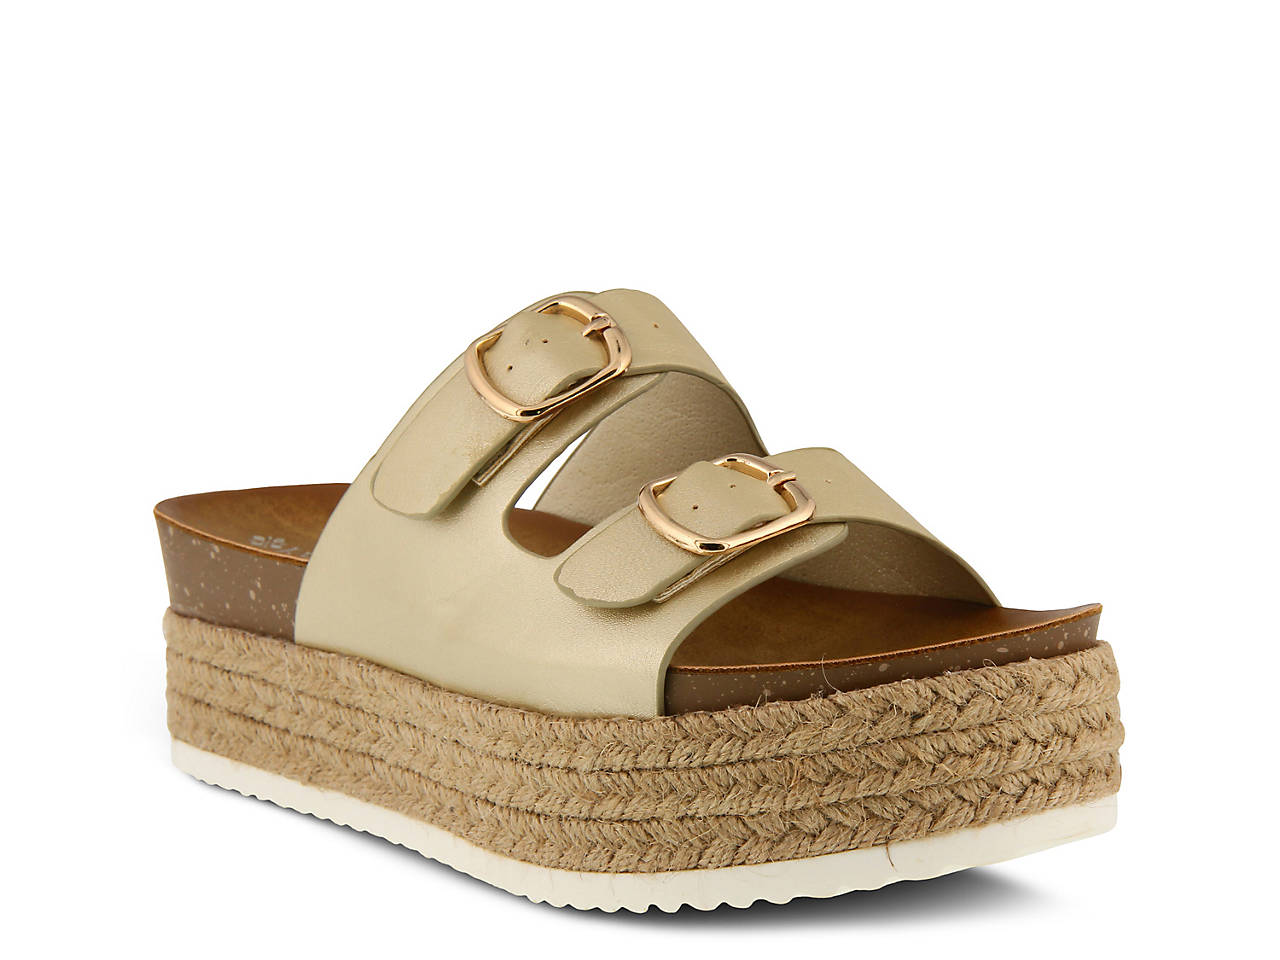 2e6b0da0a527 Patrizia by Spring Step Norah Espadrille Sandal Women s Shoes